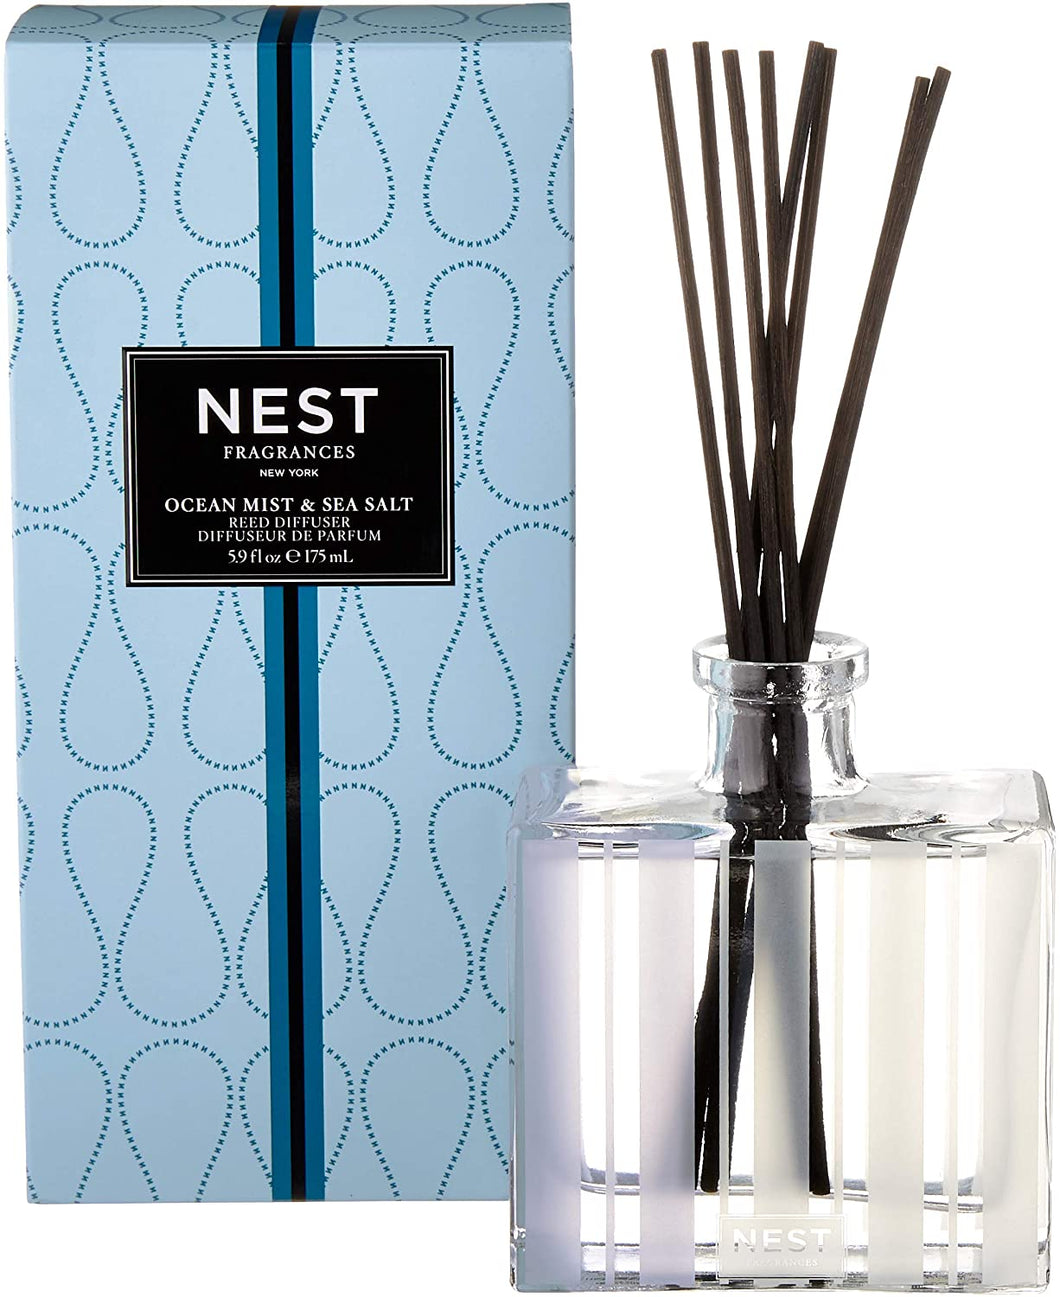 Ocean Mist & Sea Salt Reed Diffuser